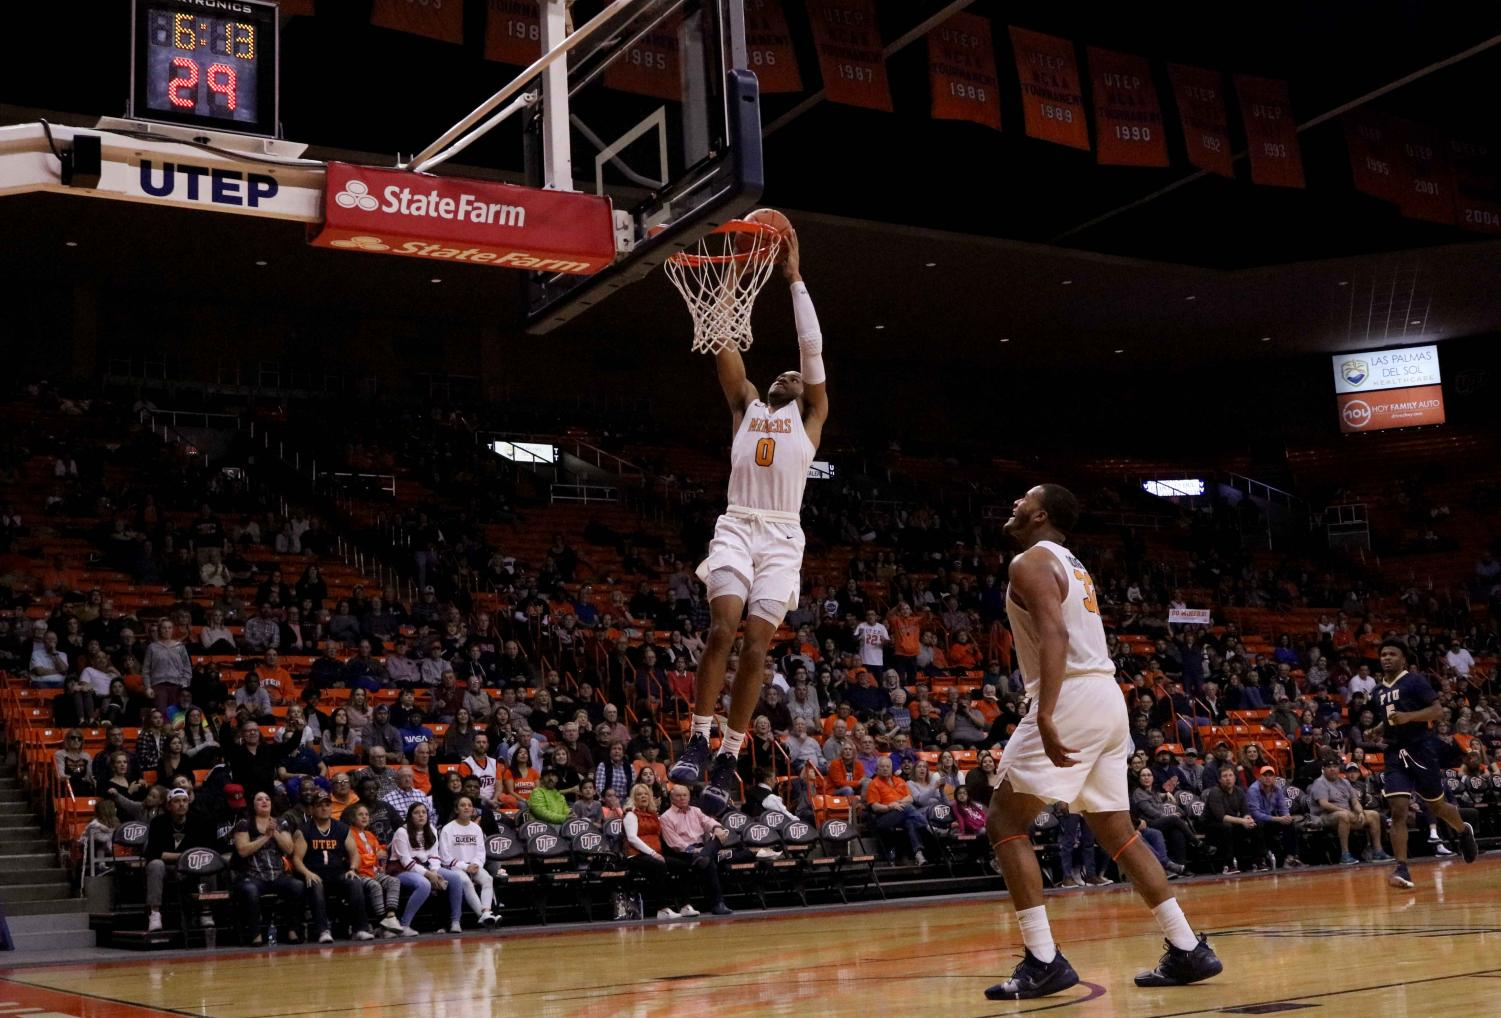 Freshman Nigel Hawkins dunks the ball on the fast break